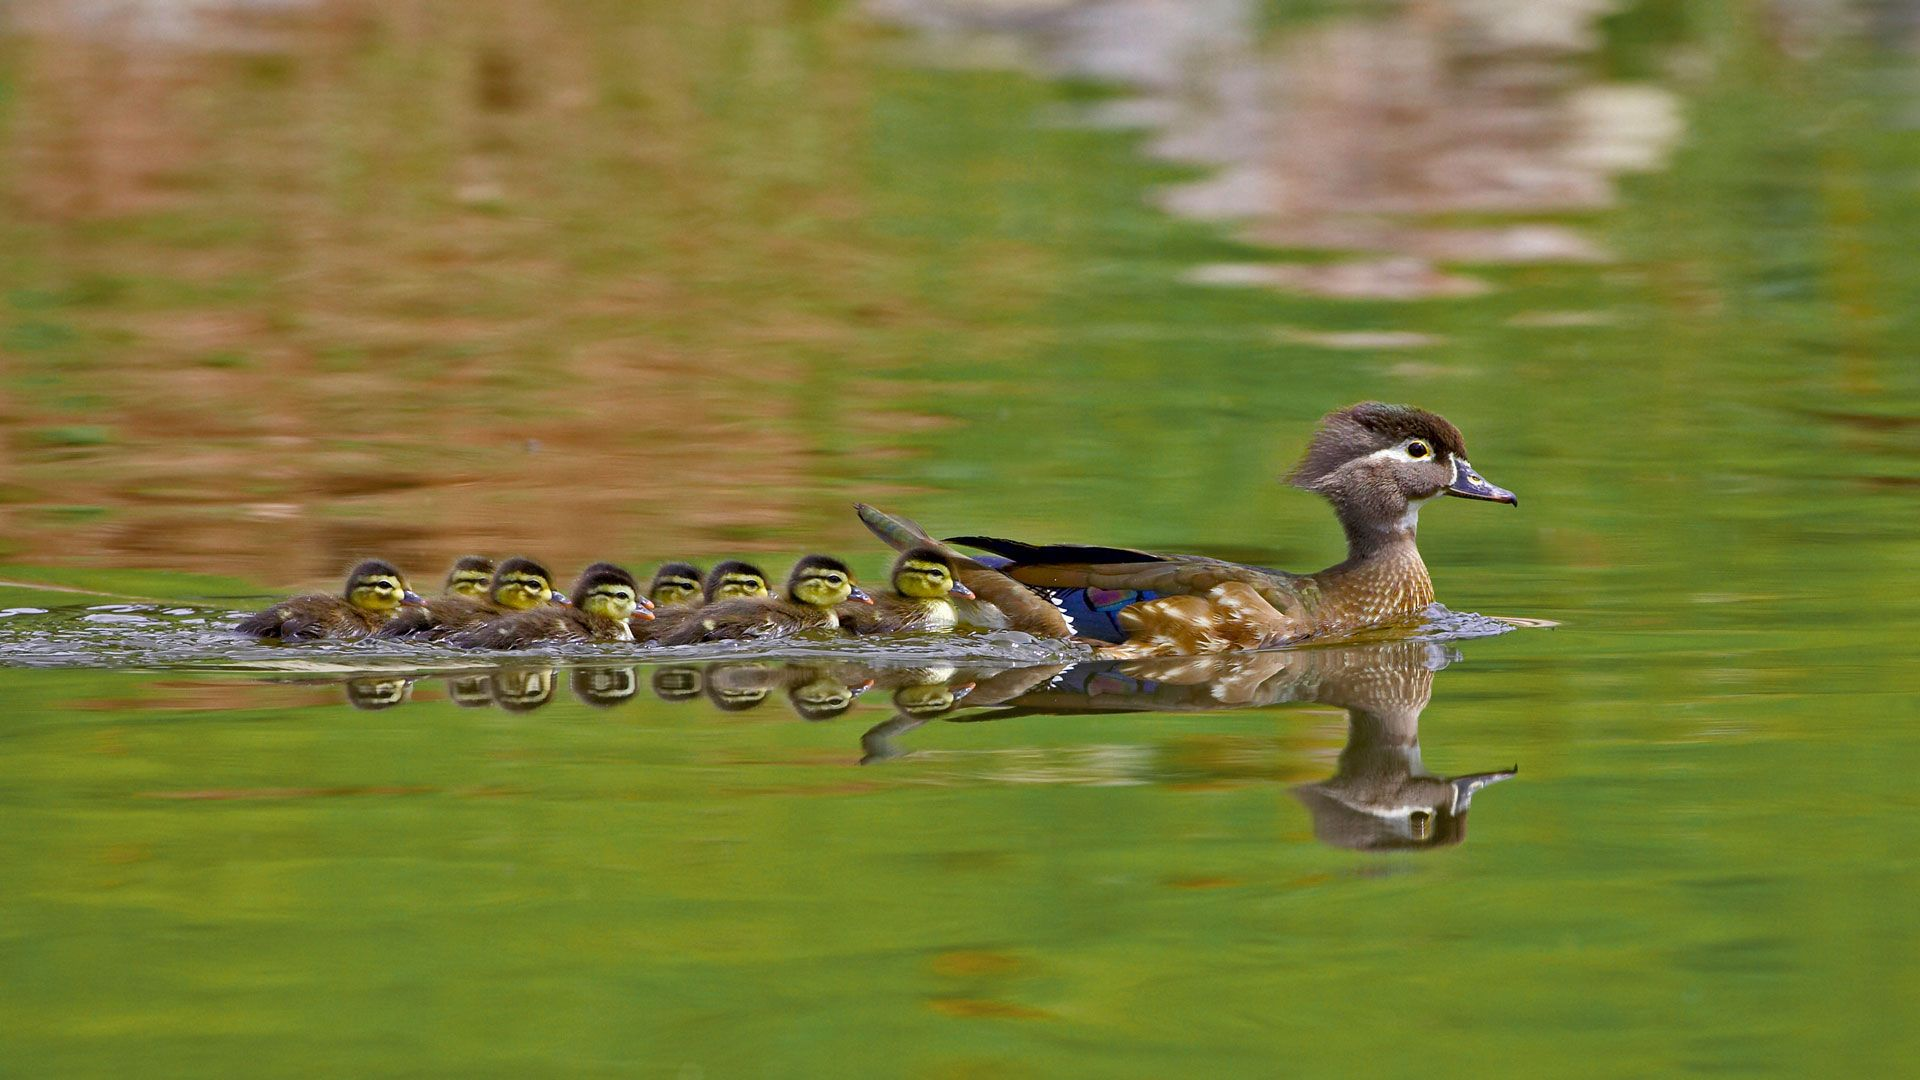 a female wood duck and ducklings in arapahoe county colorado